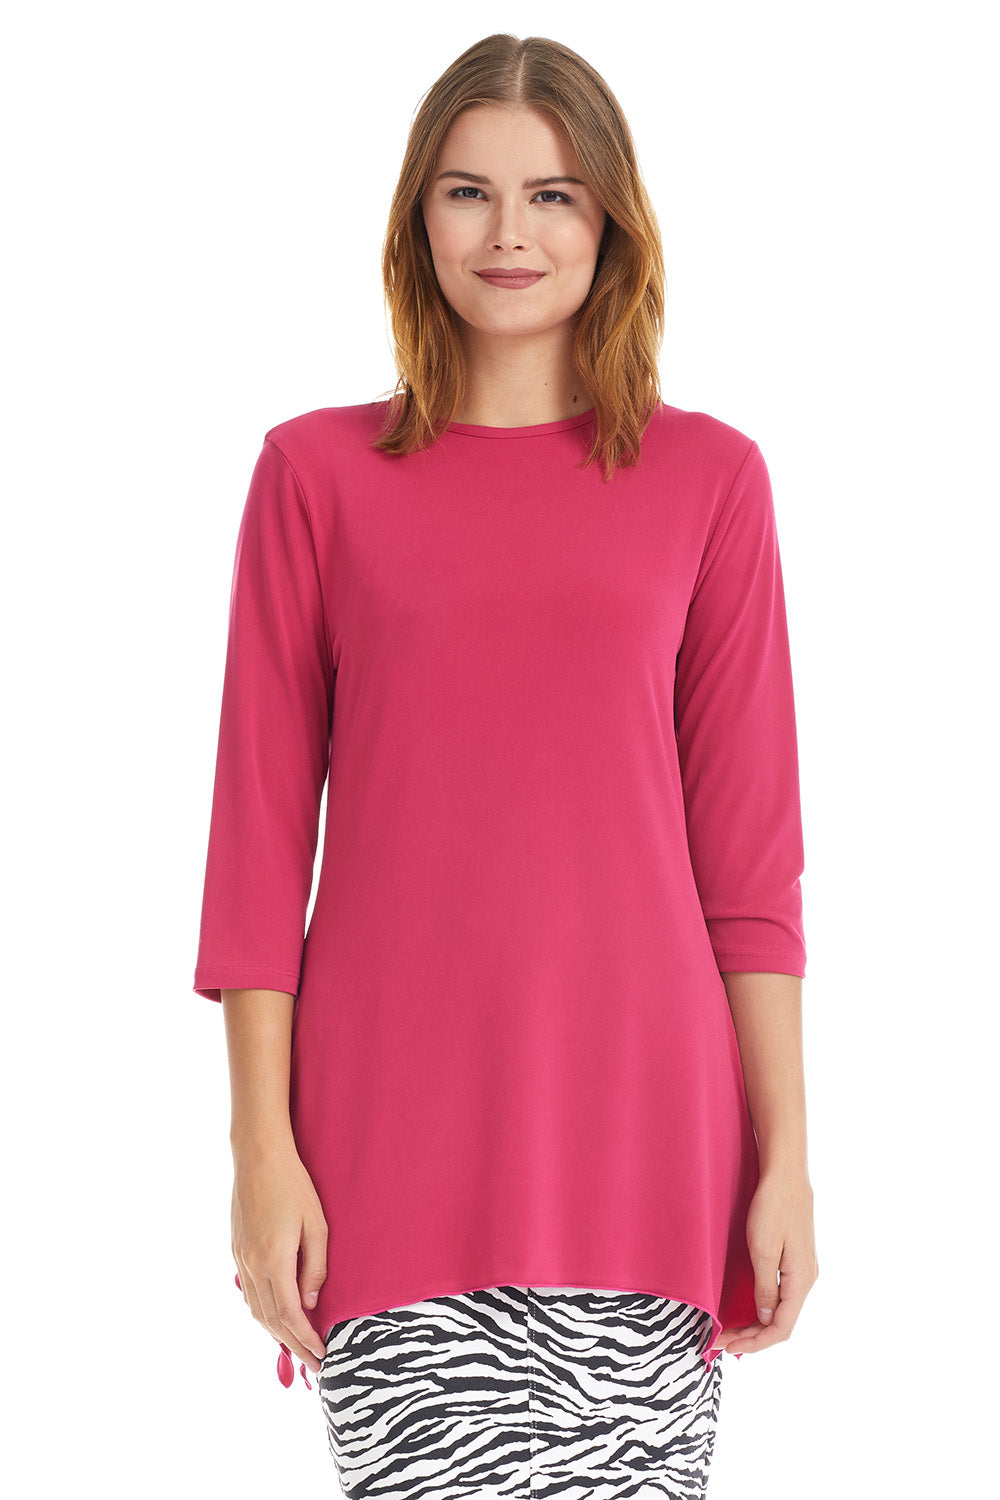 Esteez DAISY top - Womens 3/4 Sleeve Loose Fitting Shirt - Sharkbite Hem - FUCHSIA - CLEARANCE